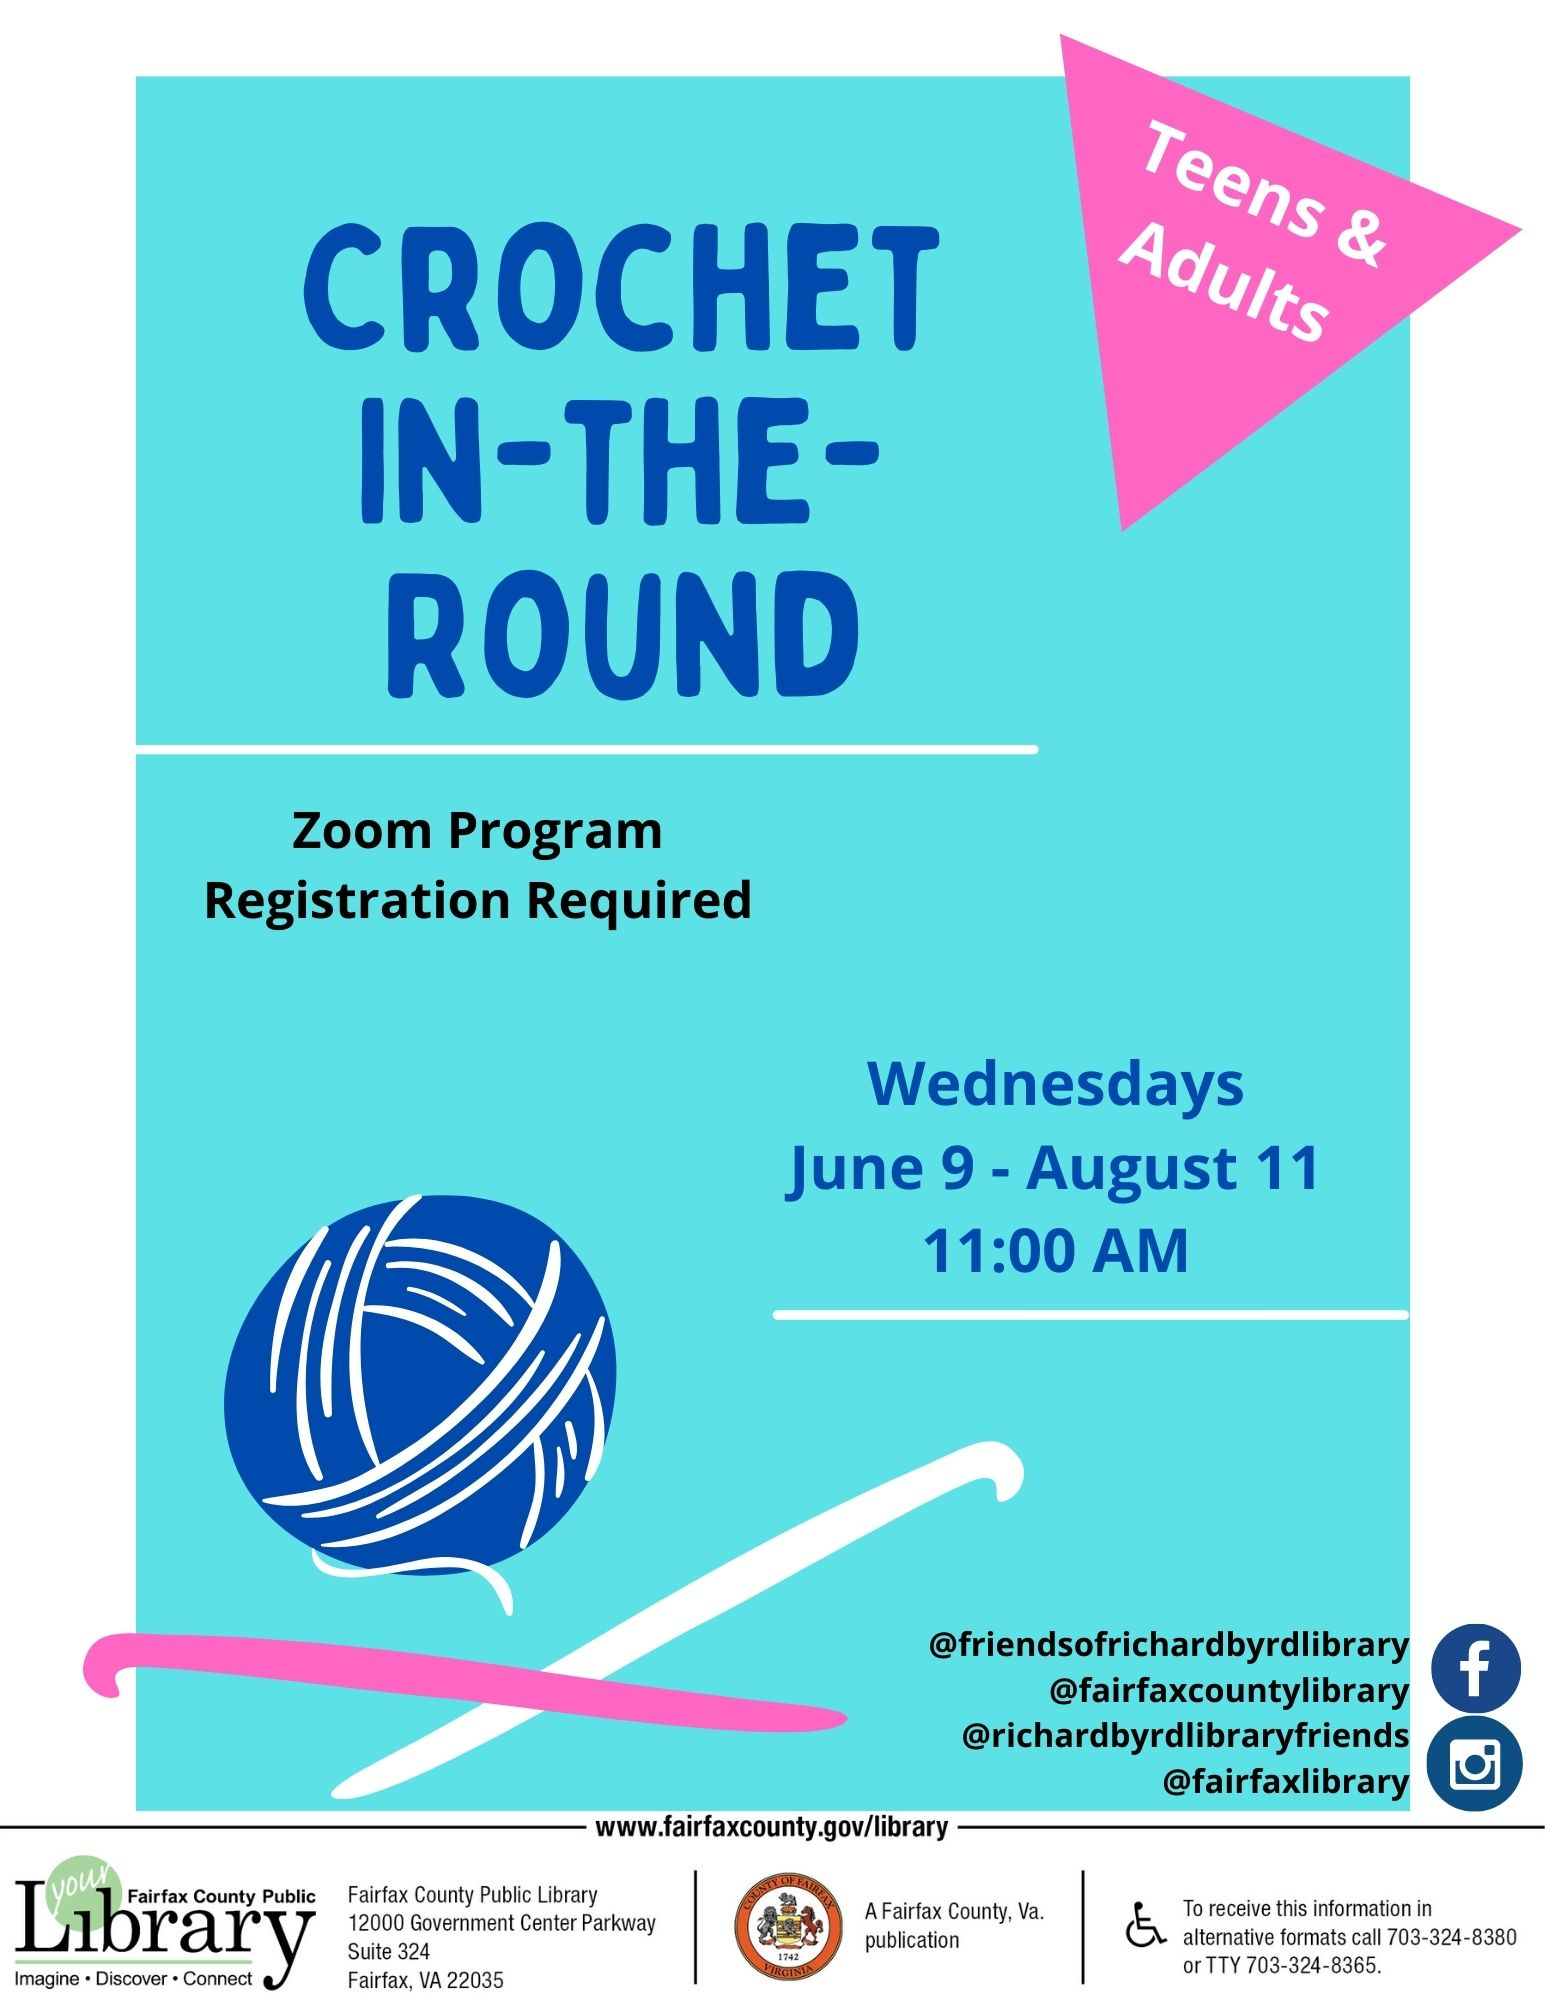 Crochet In-the-Round